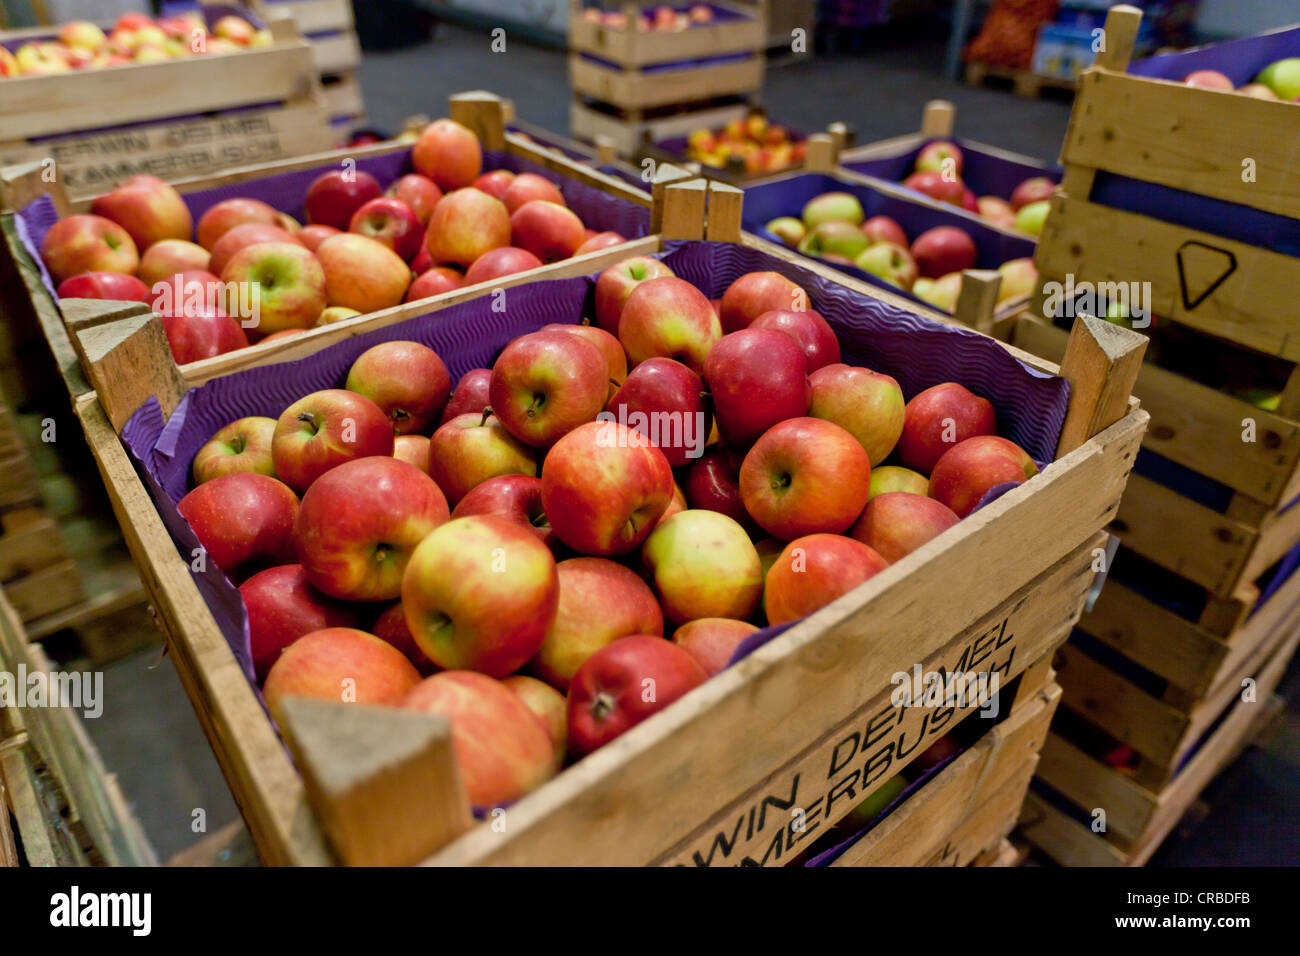 Fresh Apples In Wooden Crates The Wholesale For Produce Fruit And Vegetables Frankfurt Hesse Germany Europe